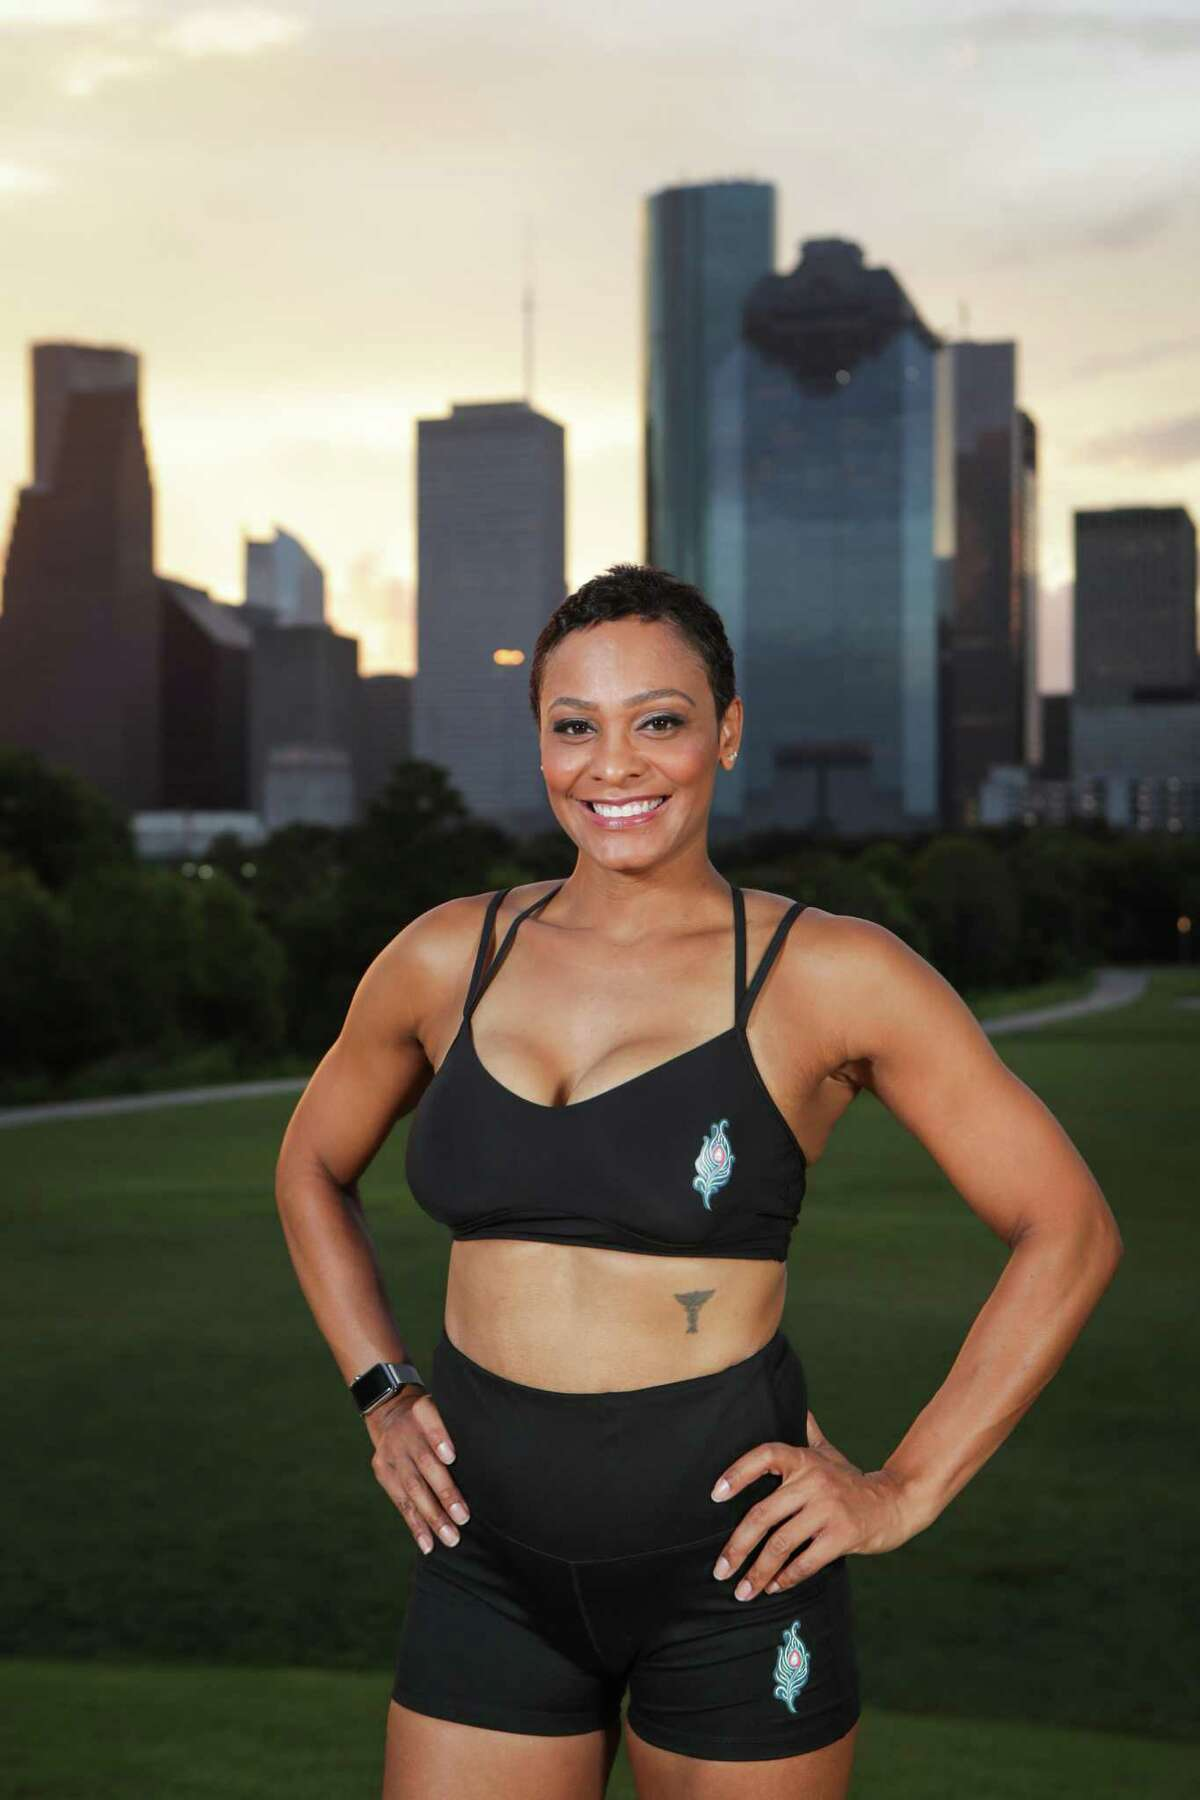 Dr. Vanessa Barrow, a Bellaire podiatrist and is known as the